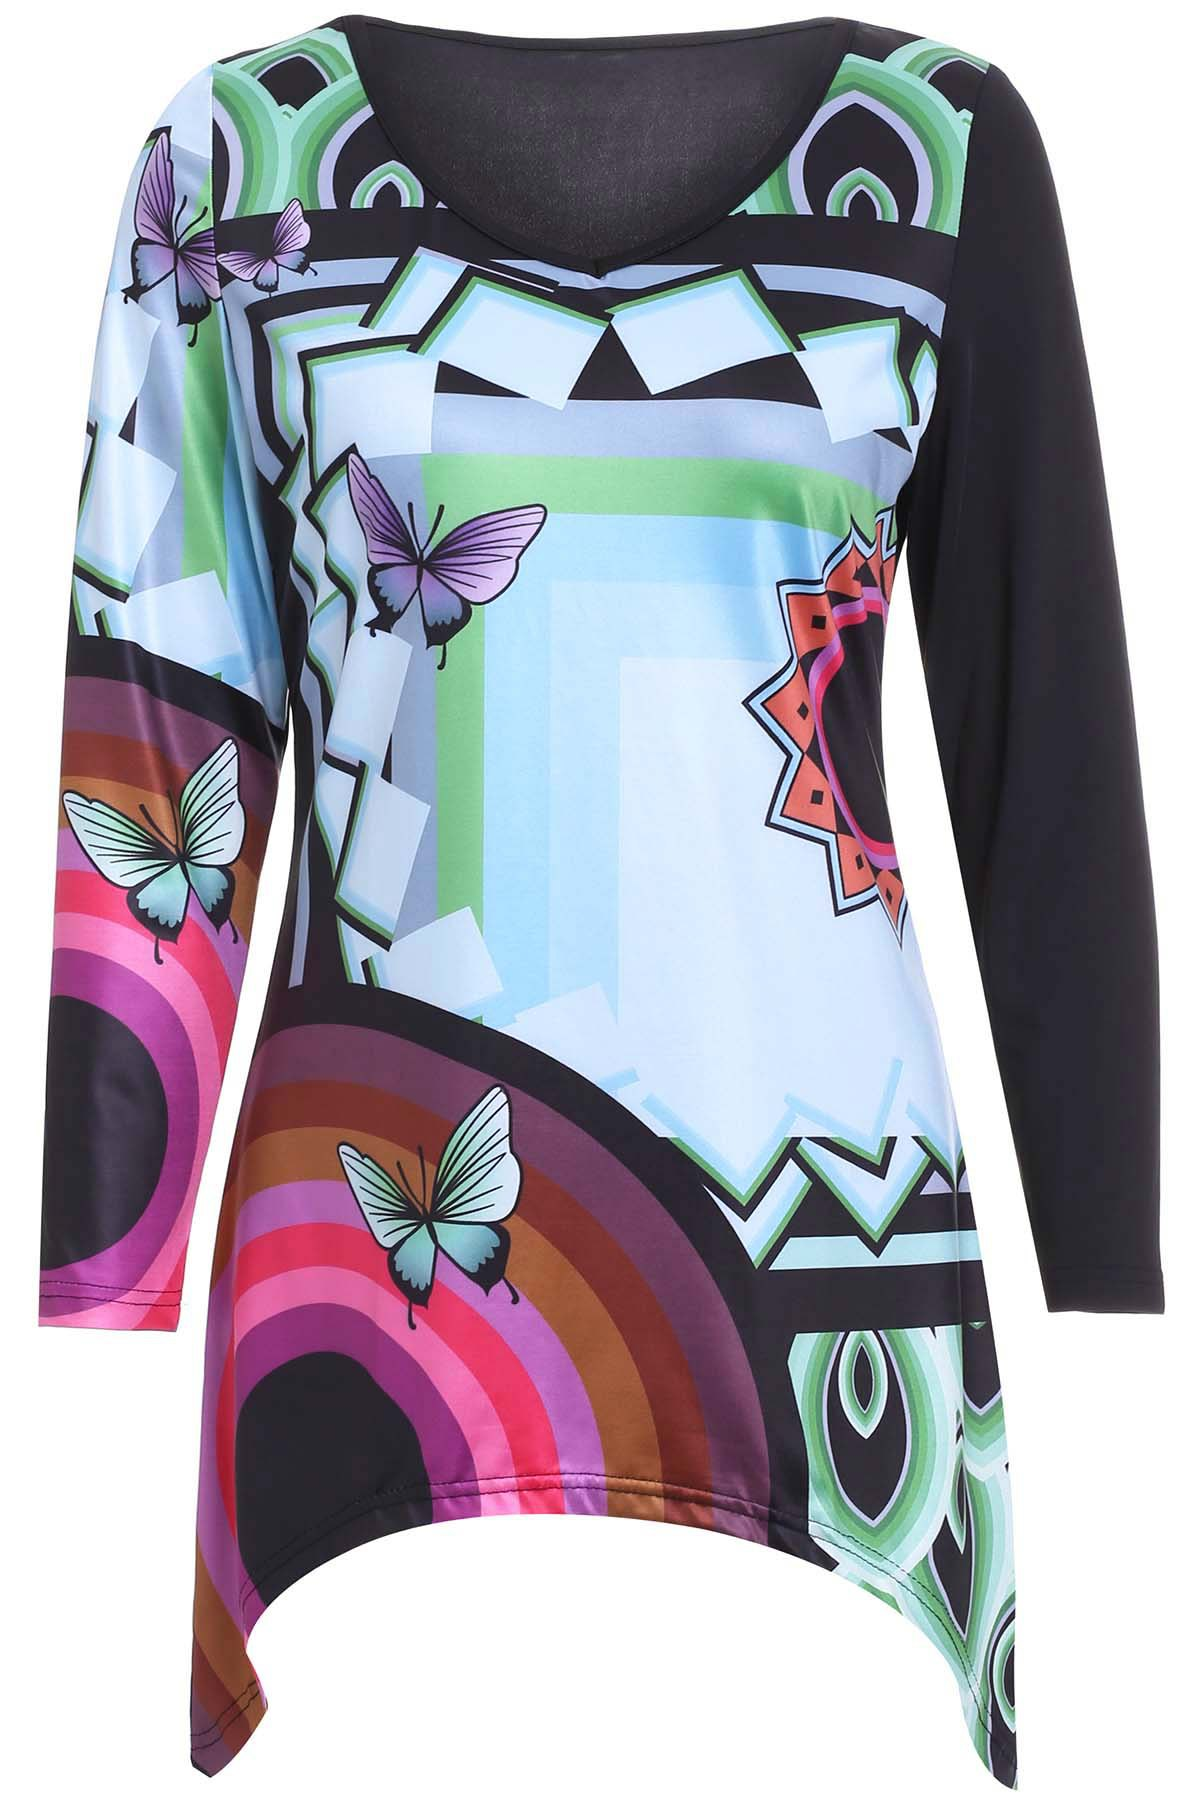 Casual Women's Butterfly Print Long Sleeves Blouse - BLACK XL